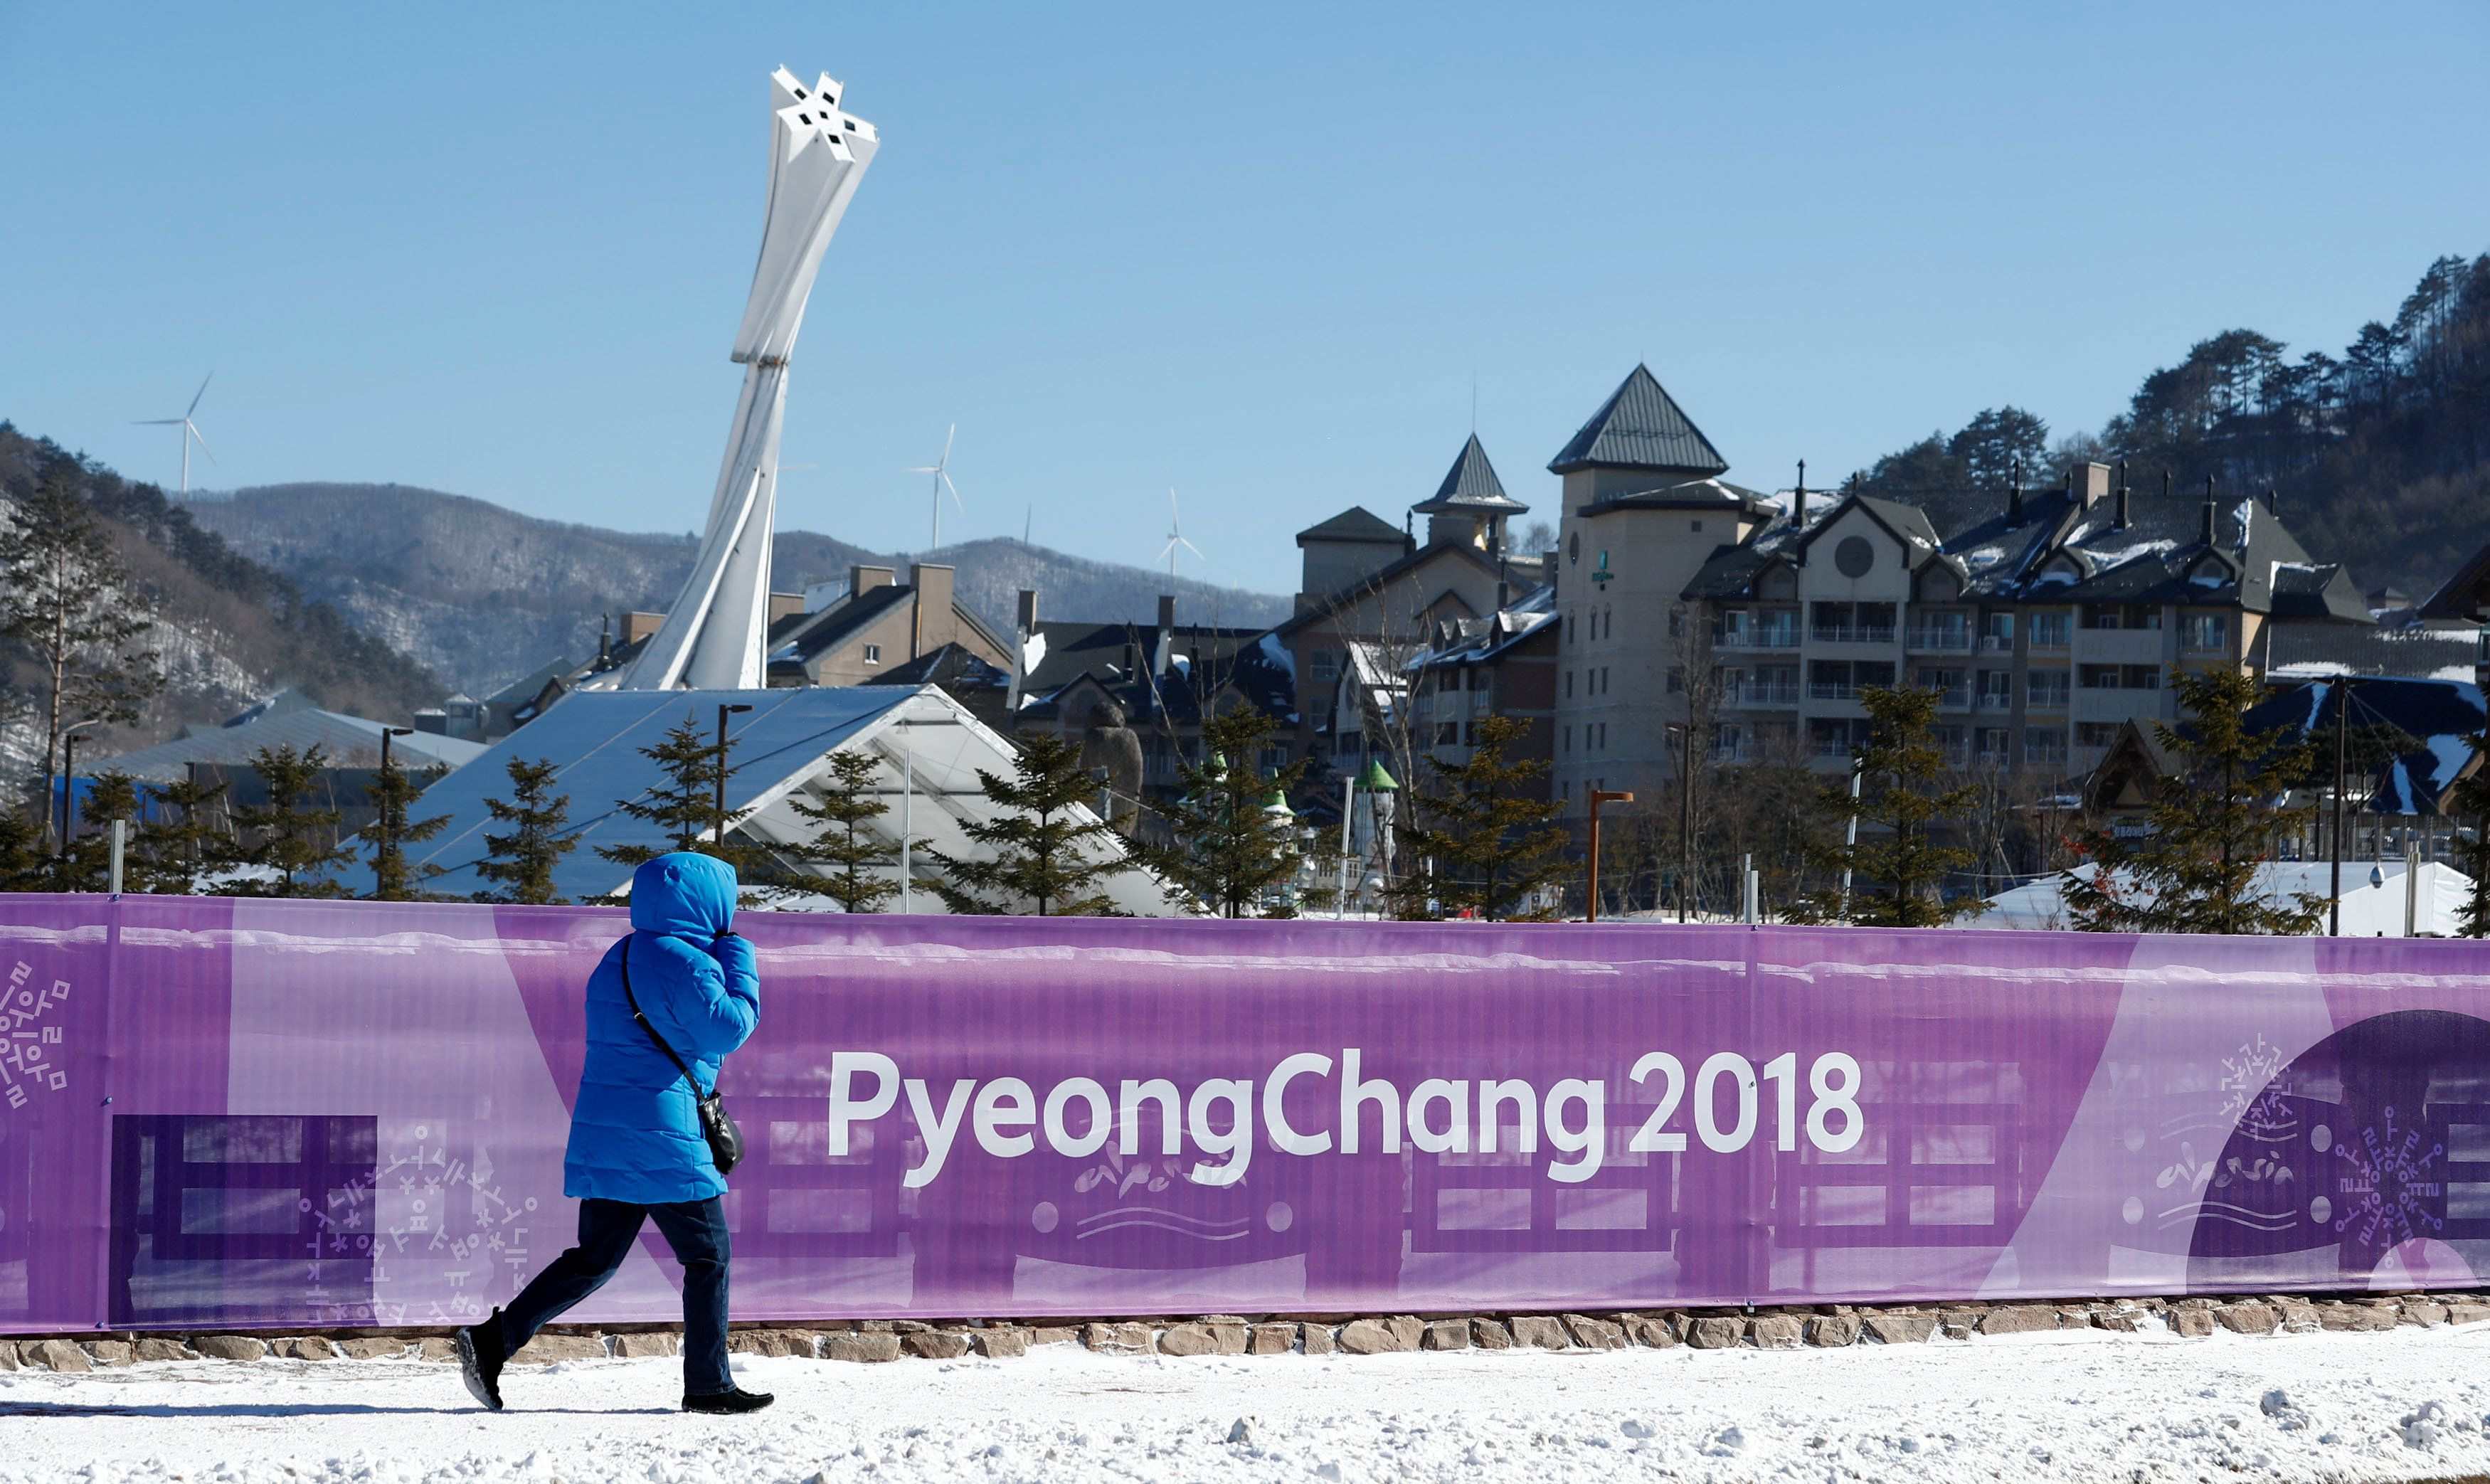 The Olympic Cauldron for the upcoming 2018 Pyeongchang Winter Olympic Games is pictured at the Alpensia resort in Pyeongchang, South Korea, January 23, 2018.   REUTERS/Fabrizio Bensch